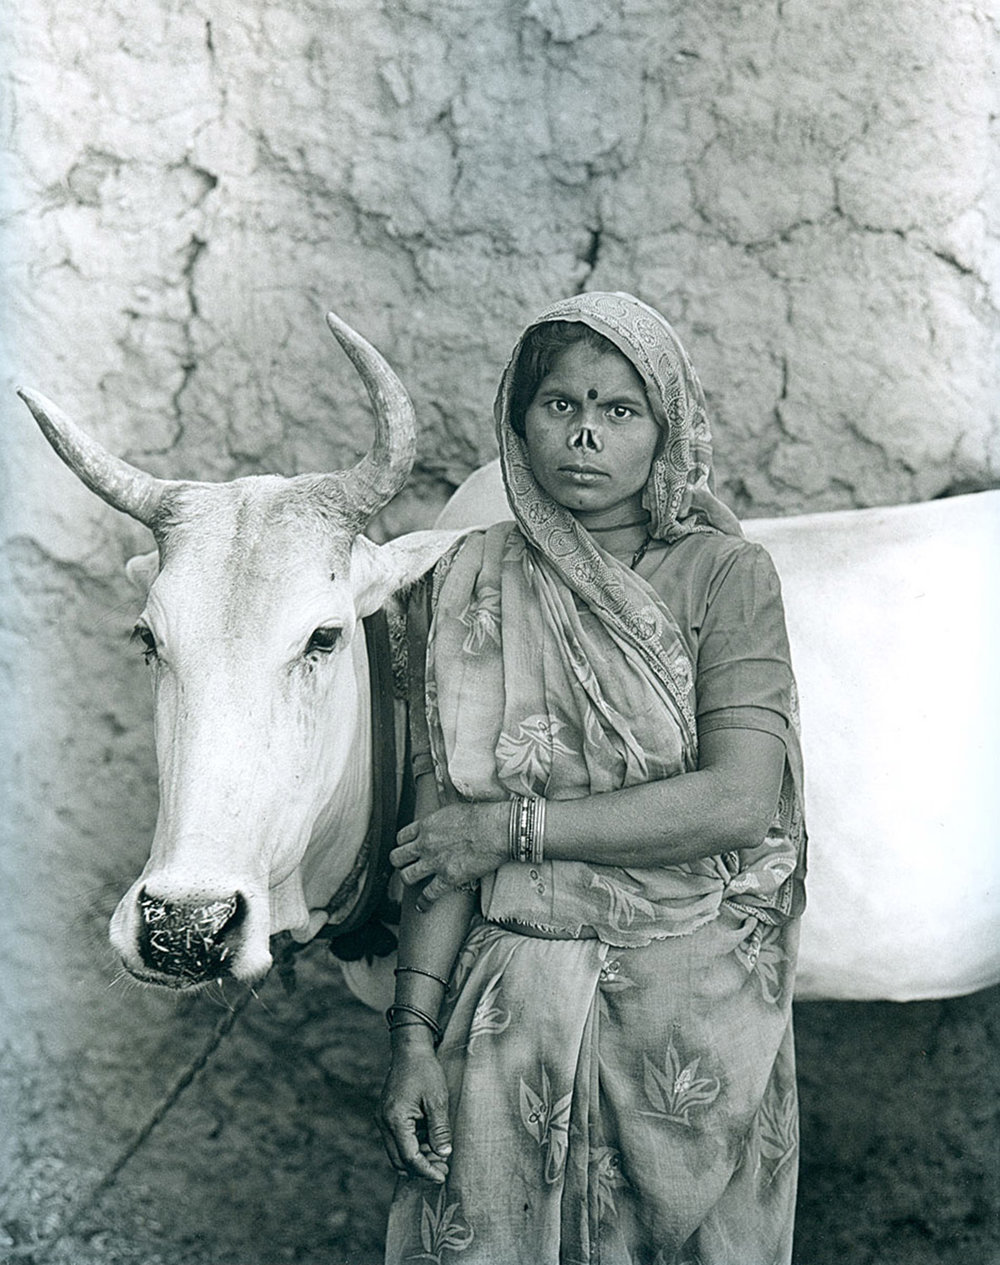 Dalit Women in Rural India , Sudharak Olwe